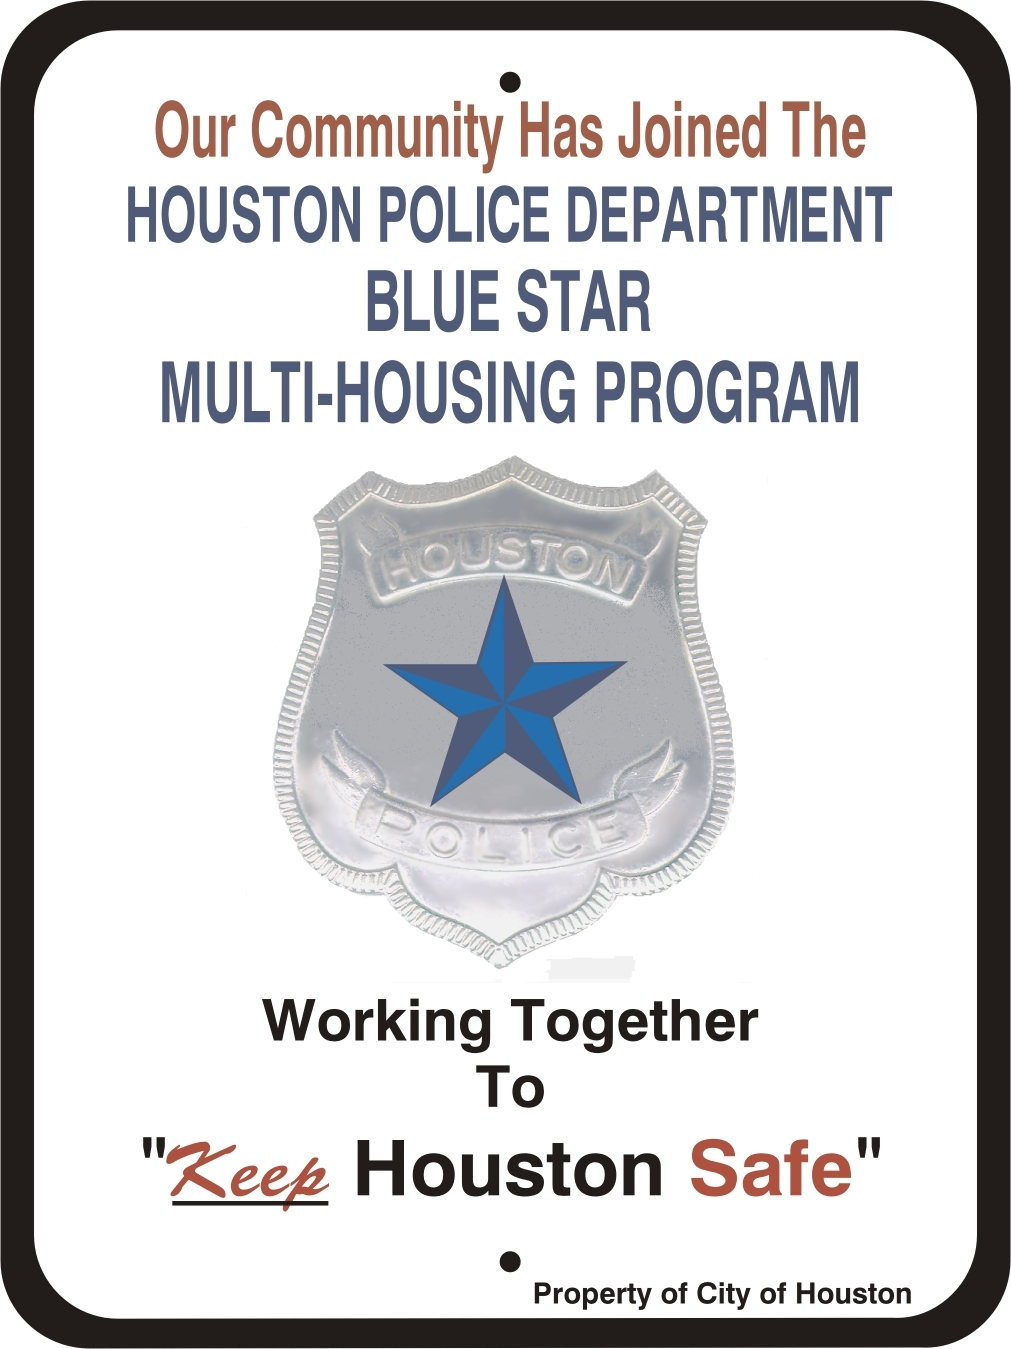 Dover Apartments is certified by Houston Police Department Blue Star Program